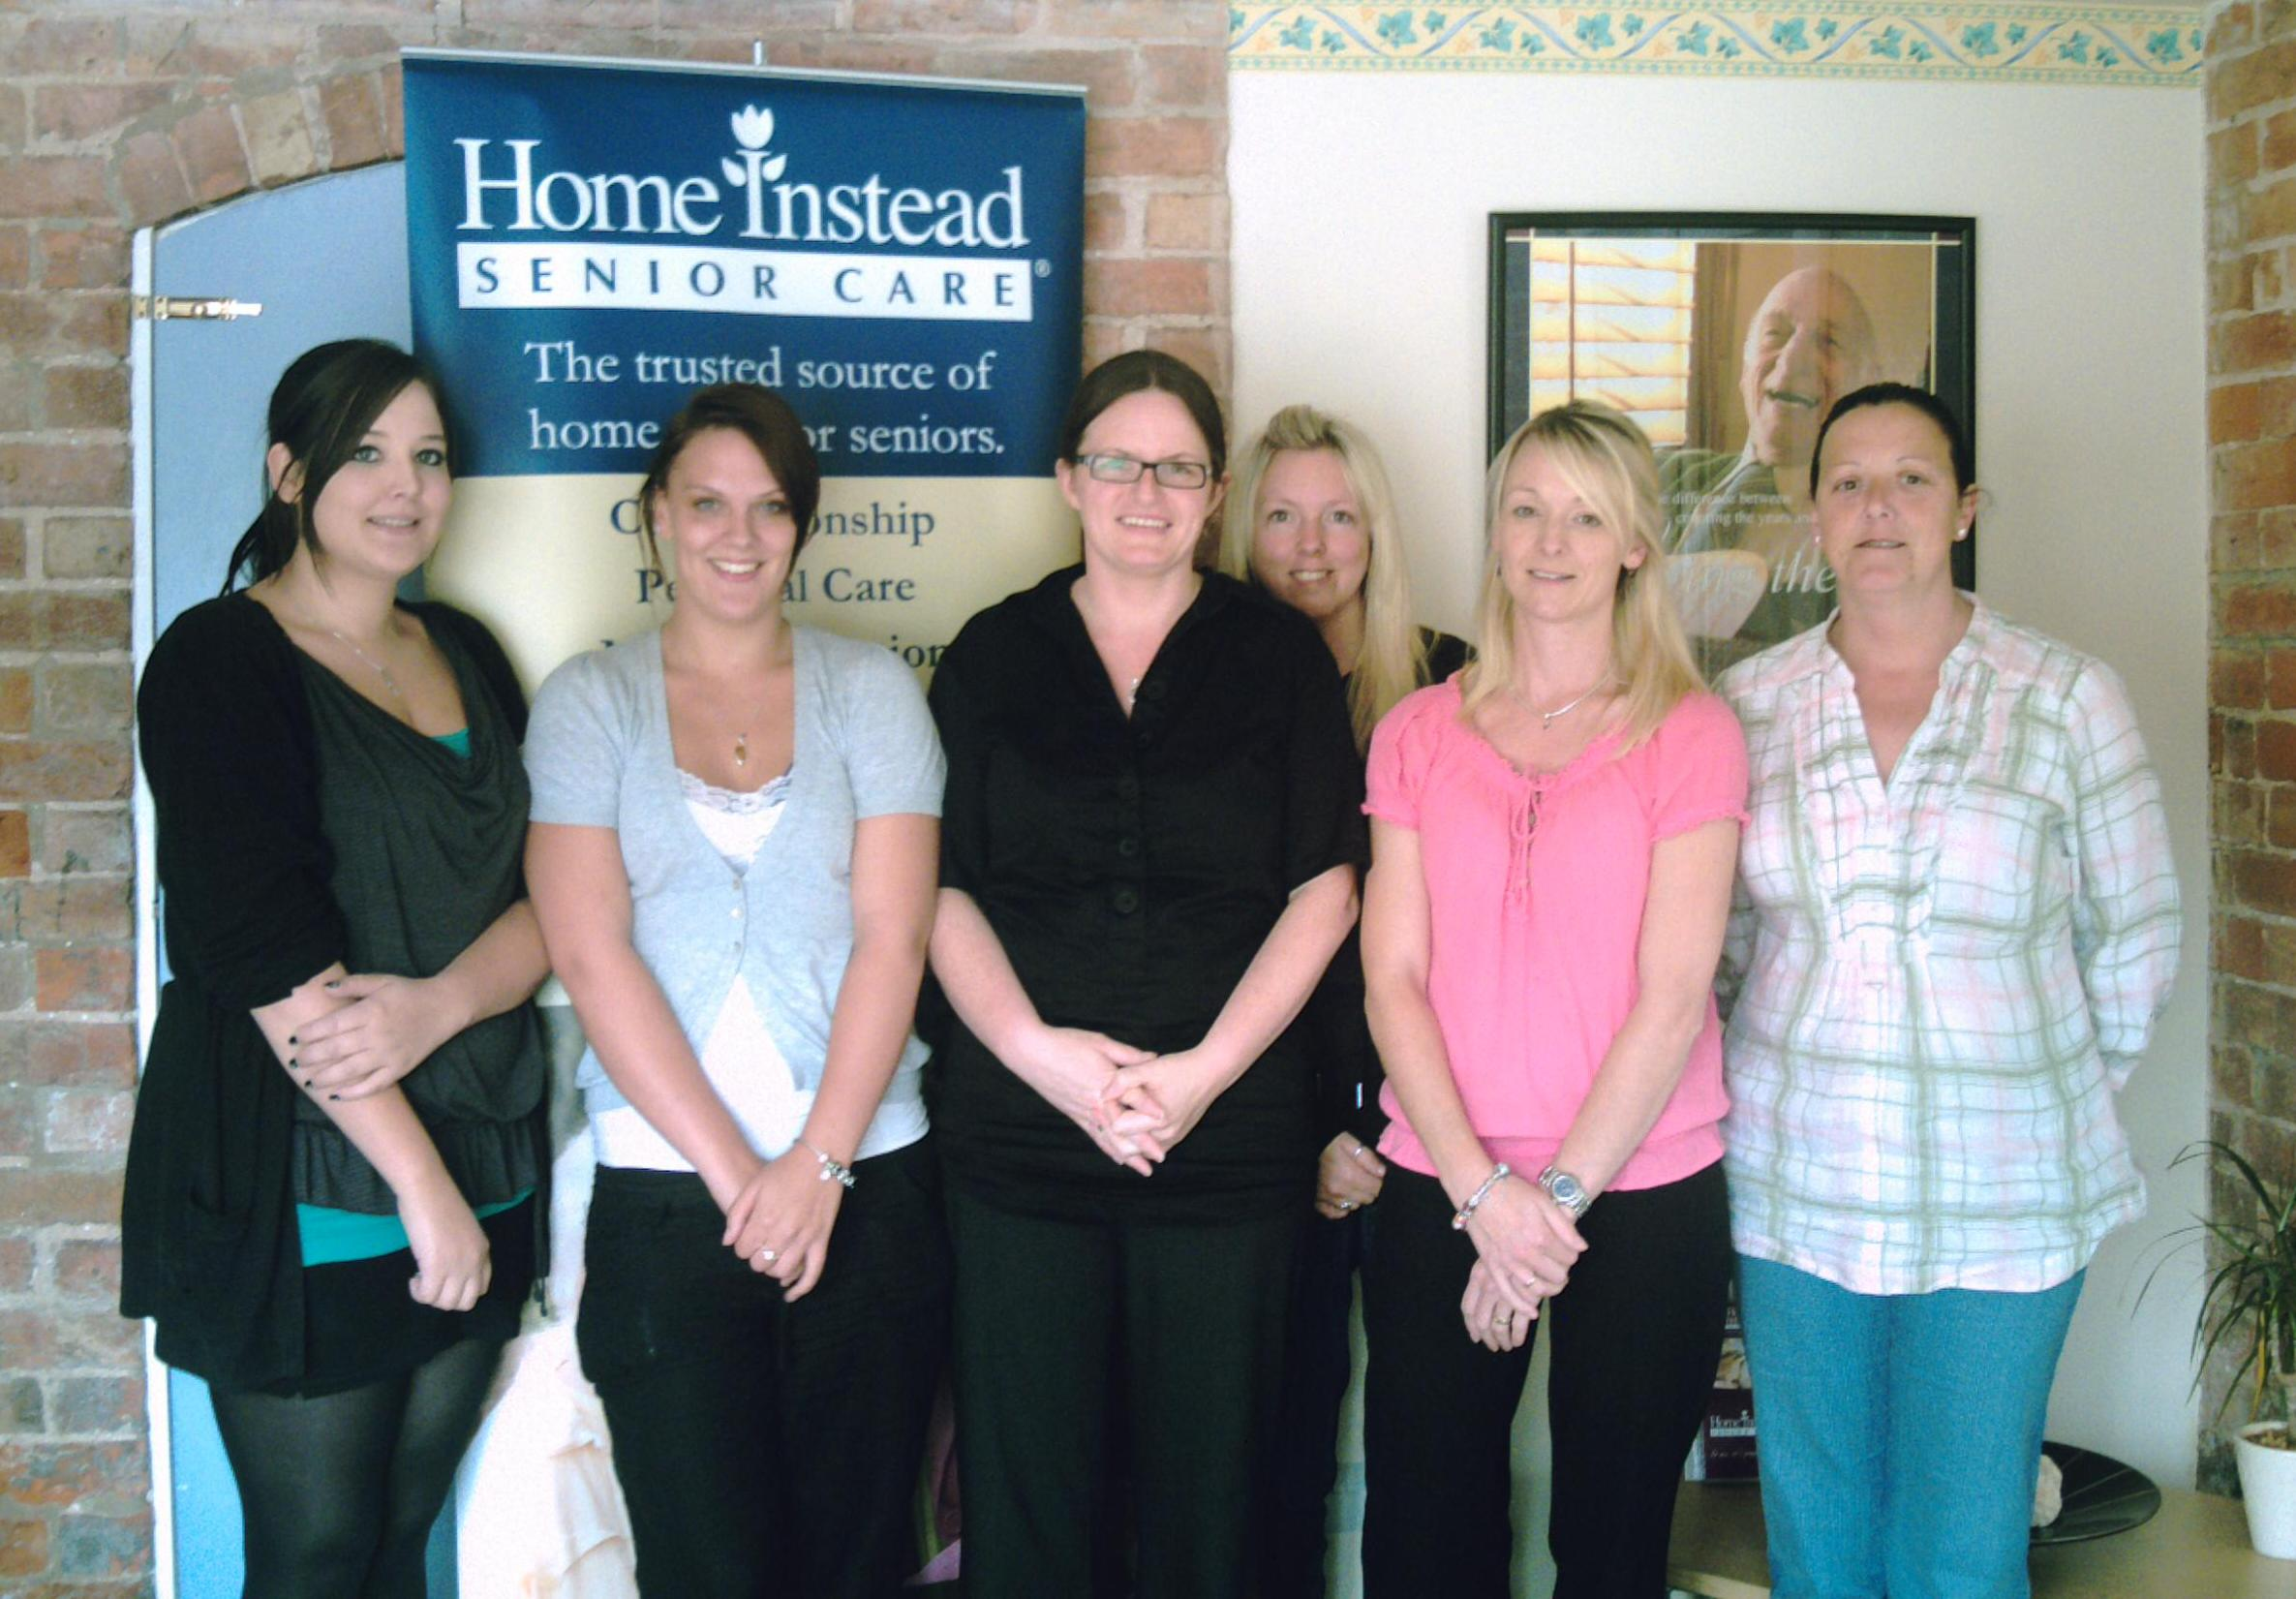 Home Instead Crewe Care Manager Kirsty Worrall, senior CAREgiver Sam Gough and latest recruits Harriet Fischer, Stephanie Smith, Vicky Jones and Janet Thomas